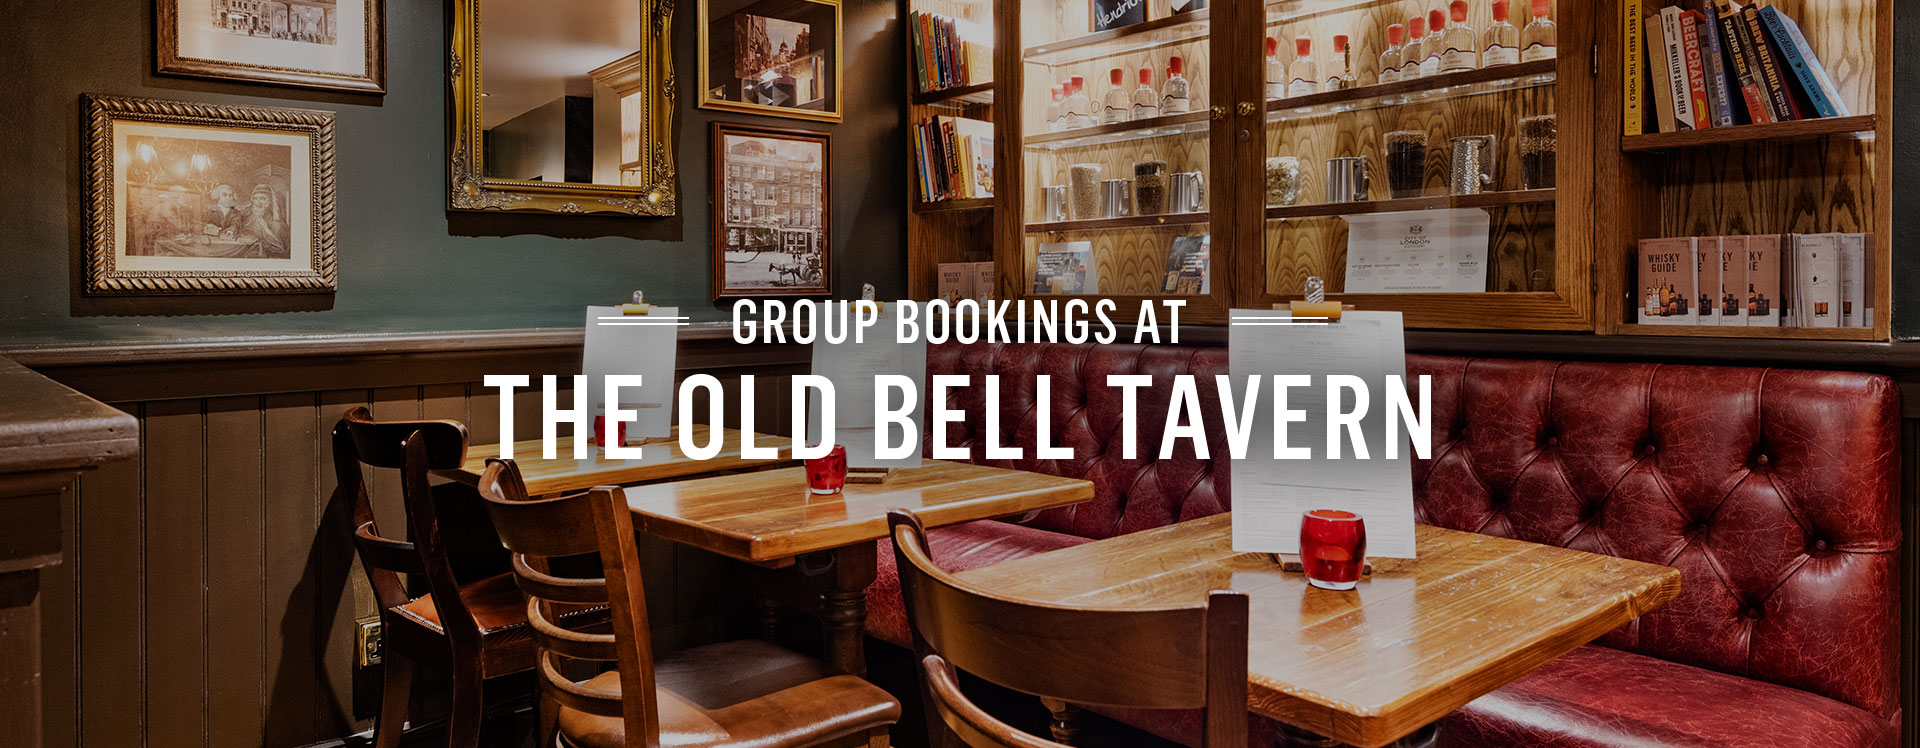 Group Bookings at The Old Bell Tavern